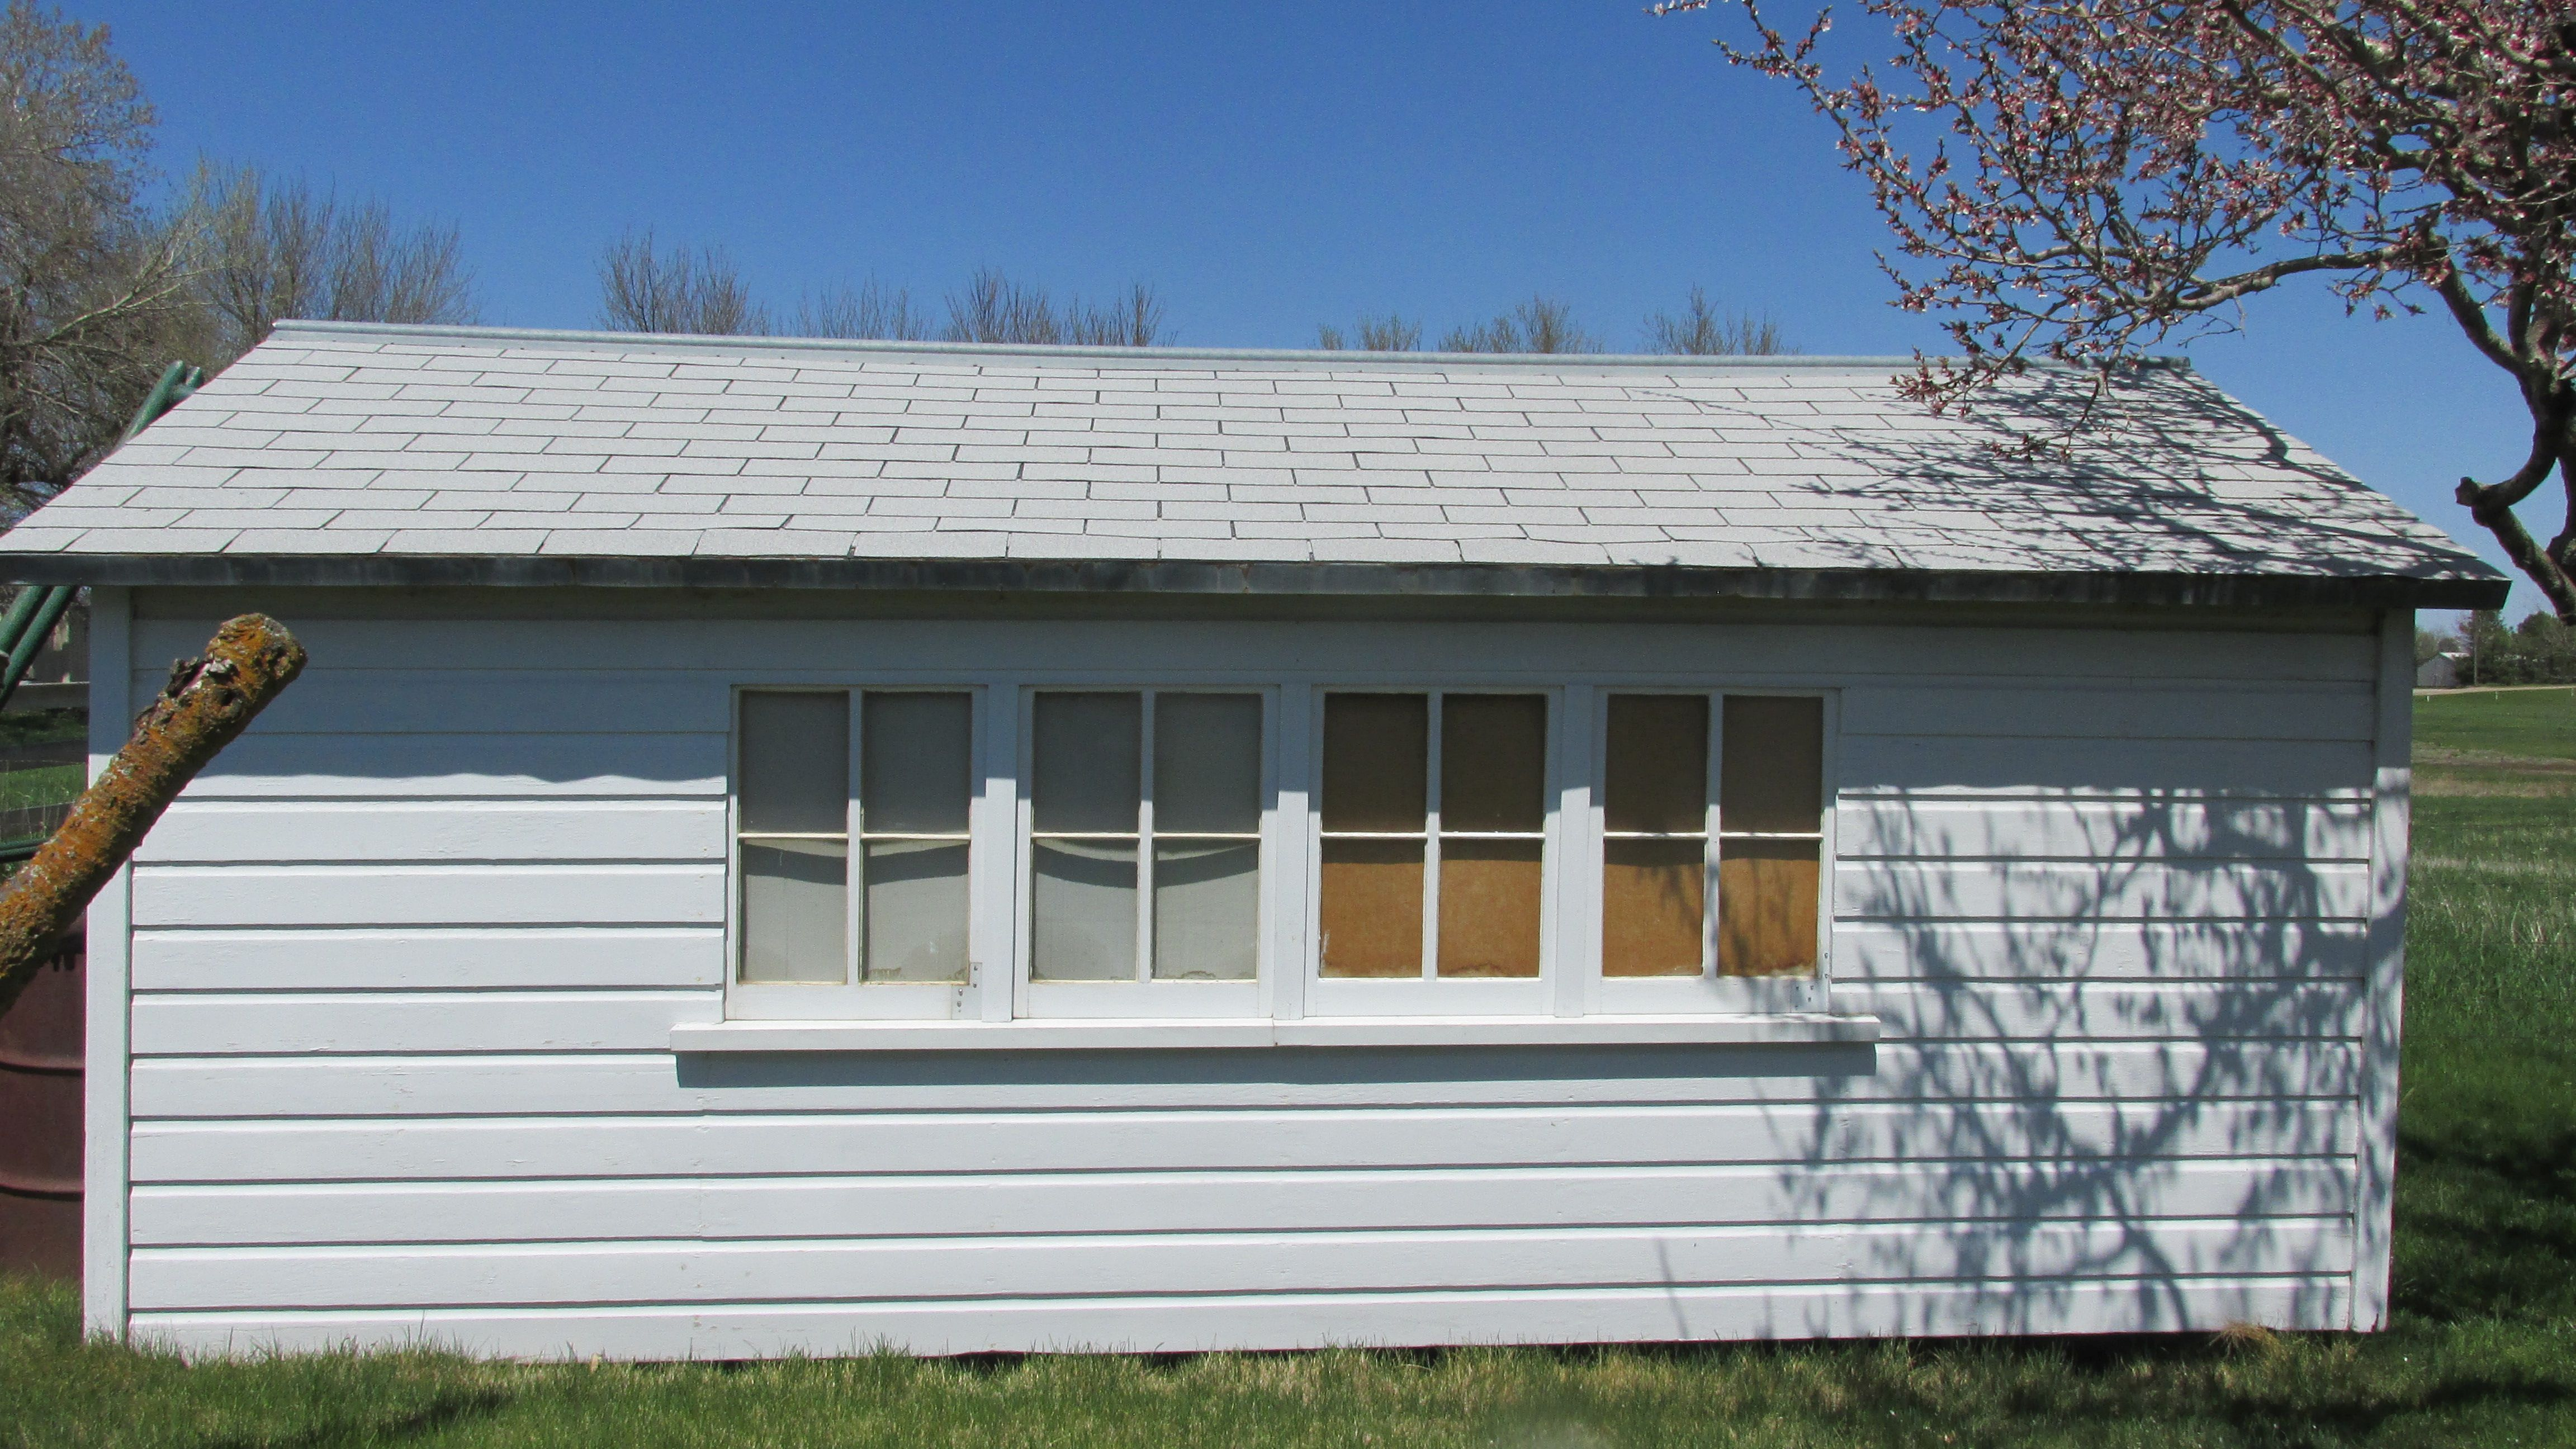 Brooder house to be moved